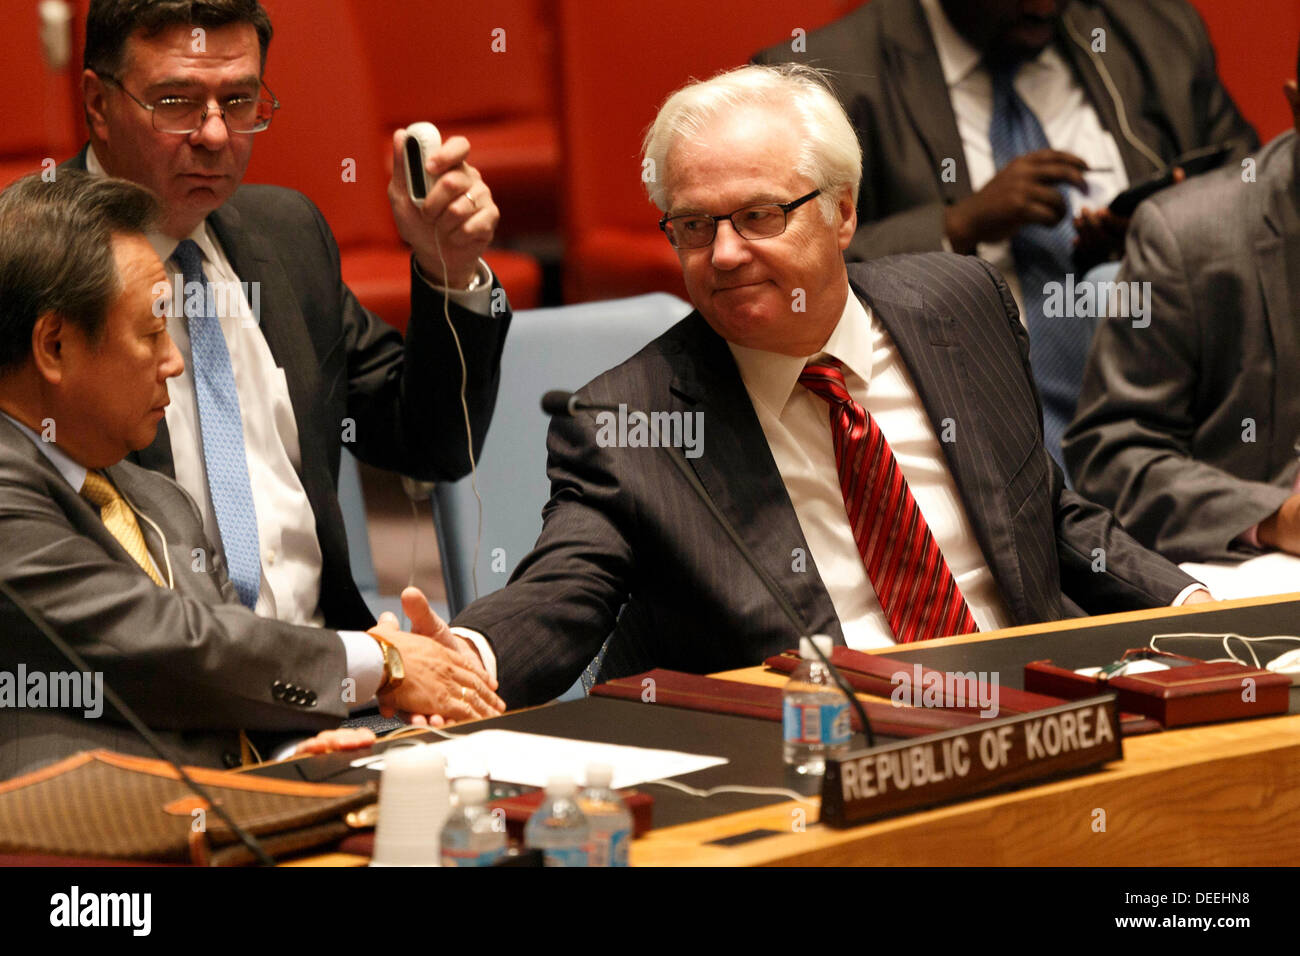 UN Security Council, NY, USA. Tues, September 17, 2013. Russian Federation Ambassador to the UN,Vitaly Churkin greets Korean Ambassador Kim Sook during a UN Security Council meeting at UN Headquarters in New York. Photo: Trevor Collens/Alamy Live News - Stock Image